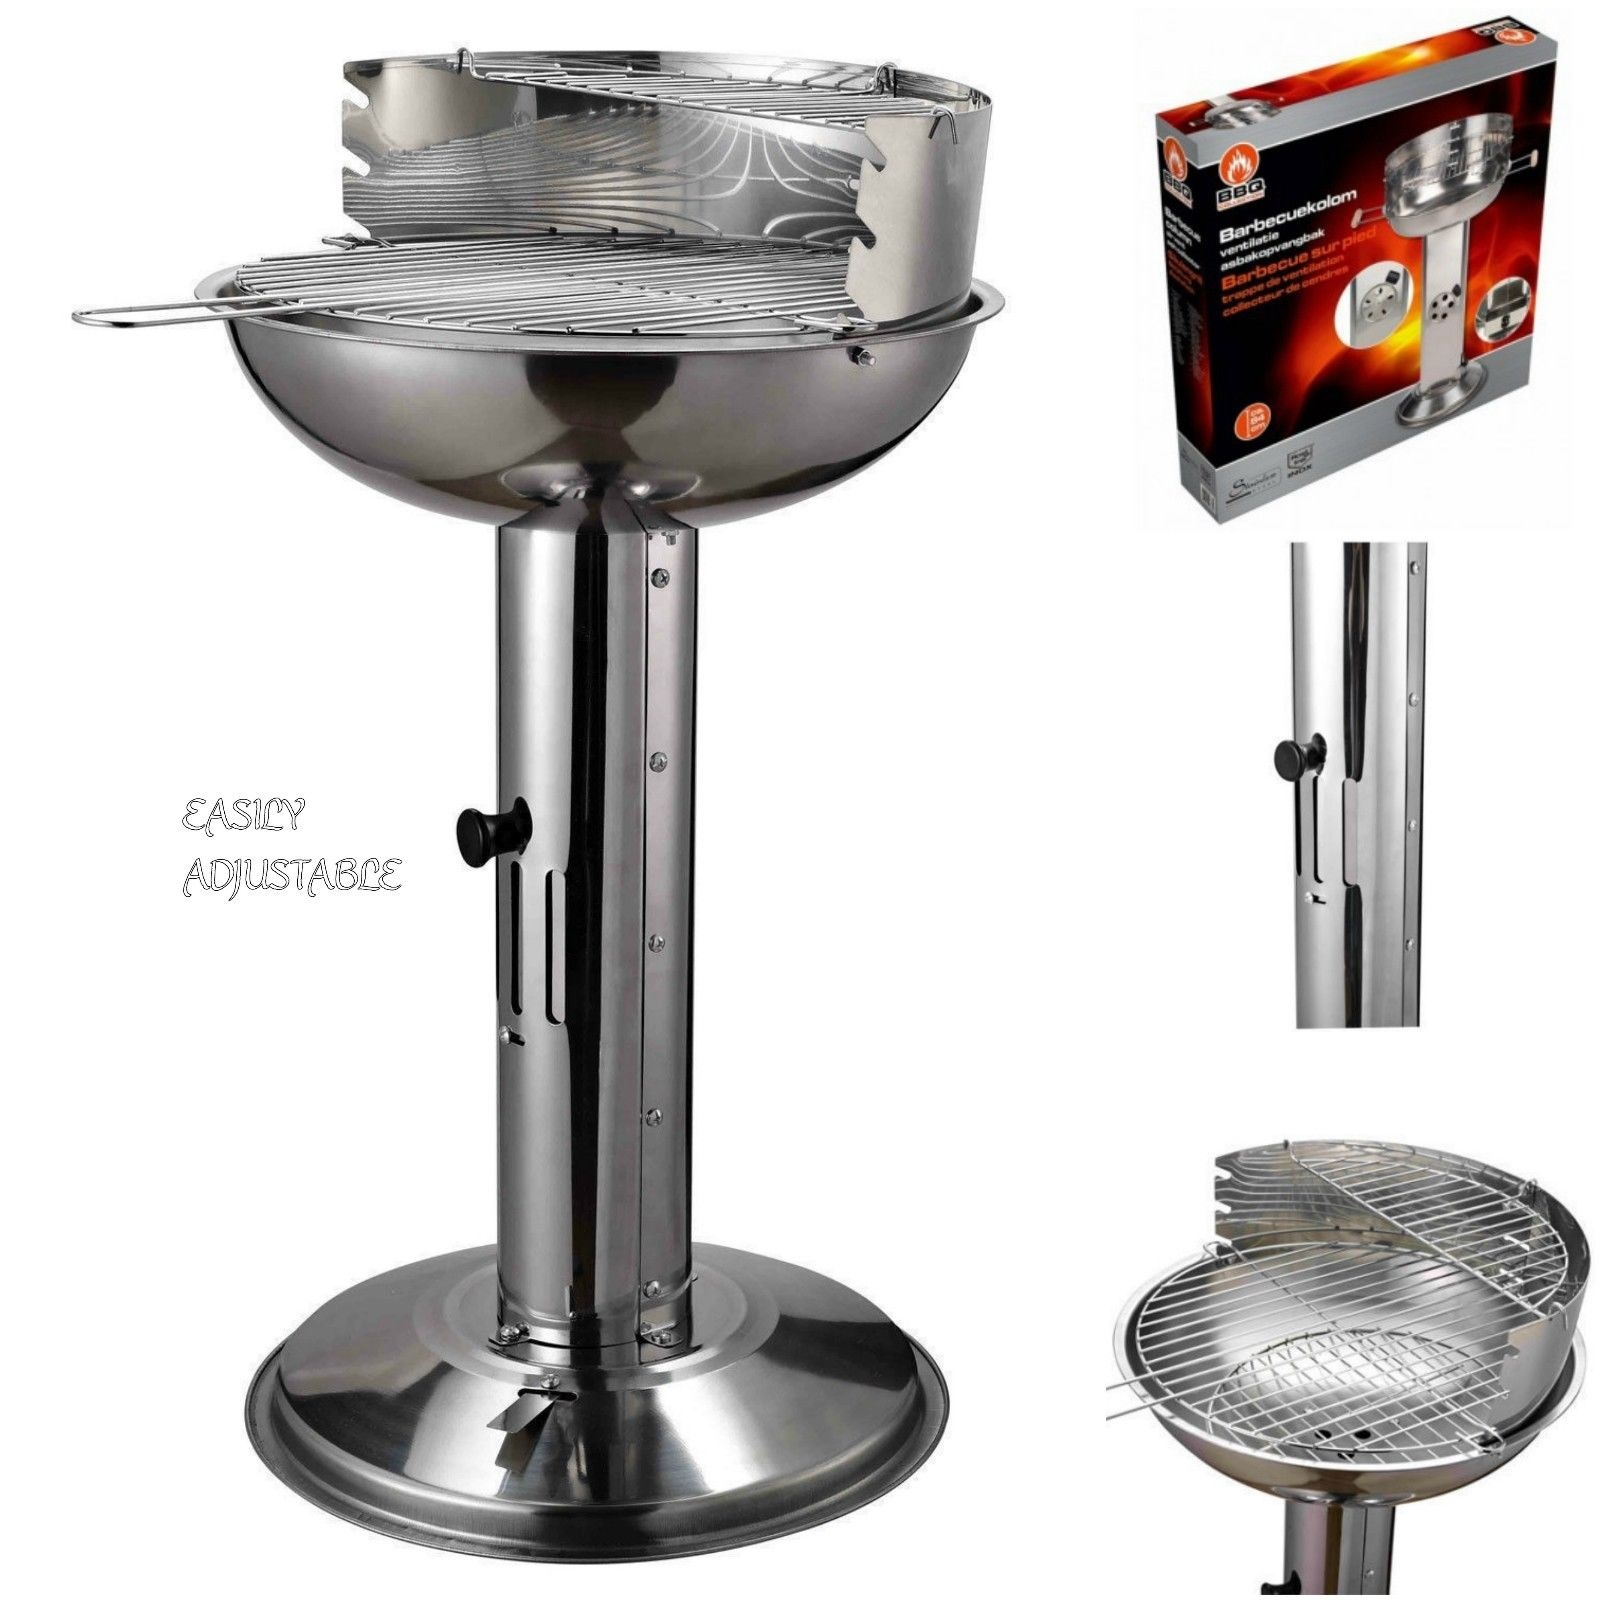 closed shop b barbeques grills pedestal heat brand bbq gas by galore smokers delta grill freestanding